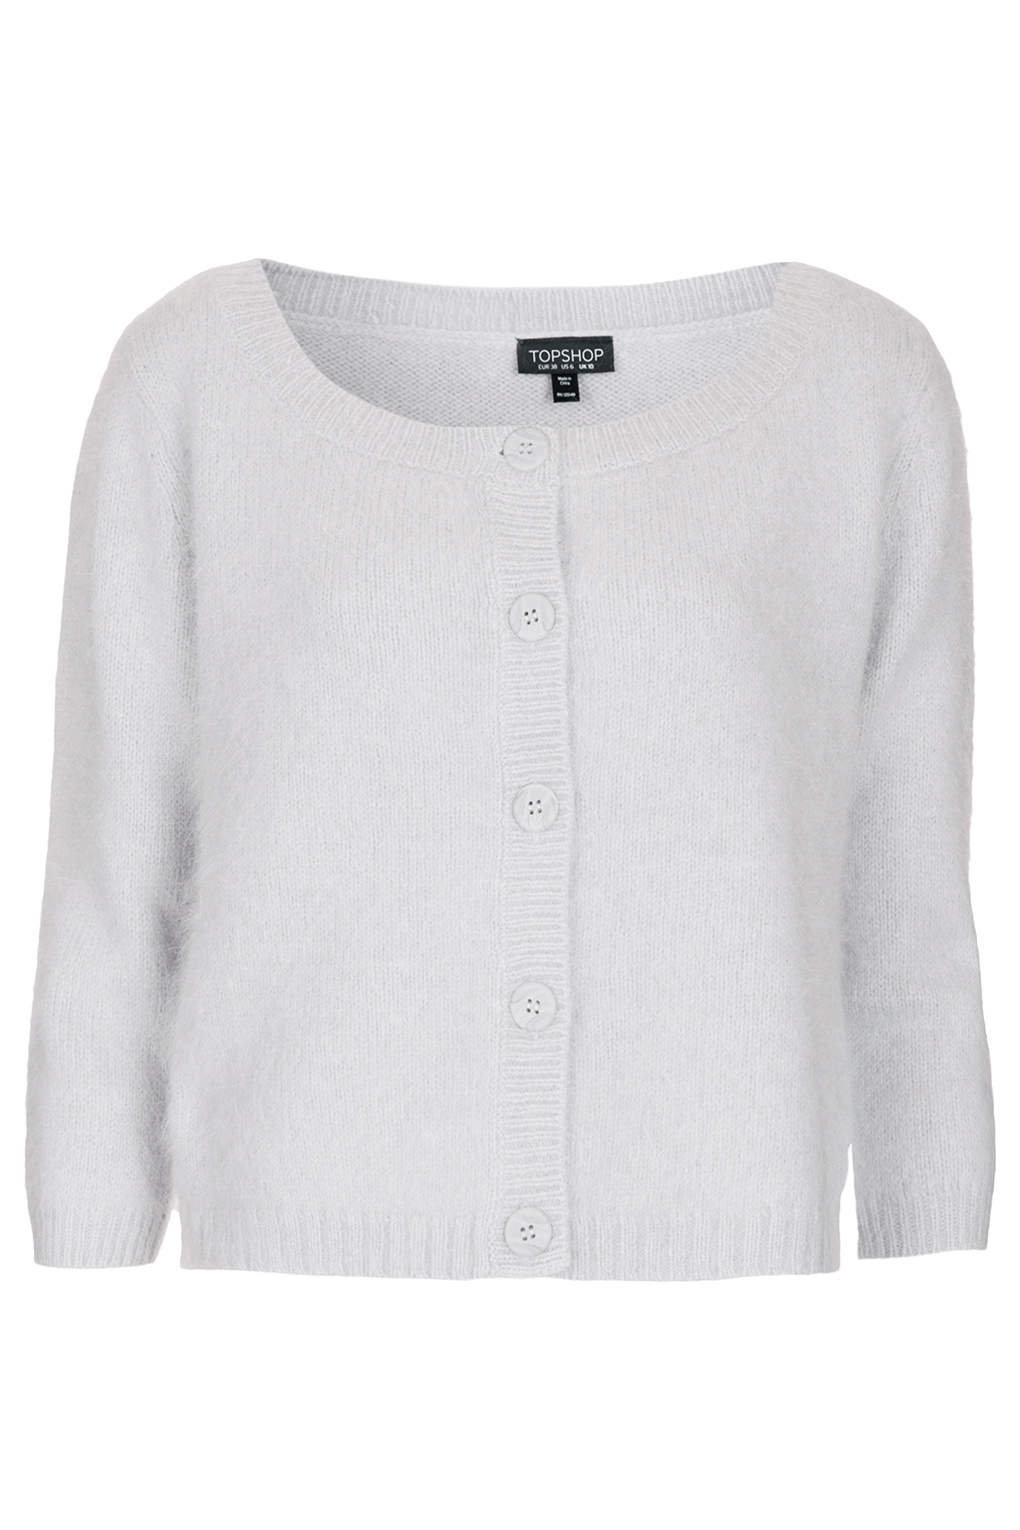 Topshop Knitted Fluffy Cardigan in Gray | Lyst